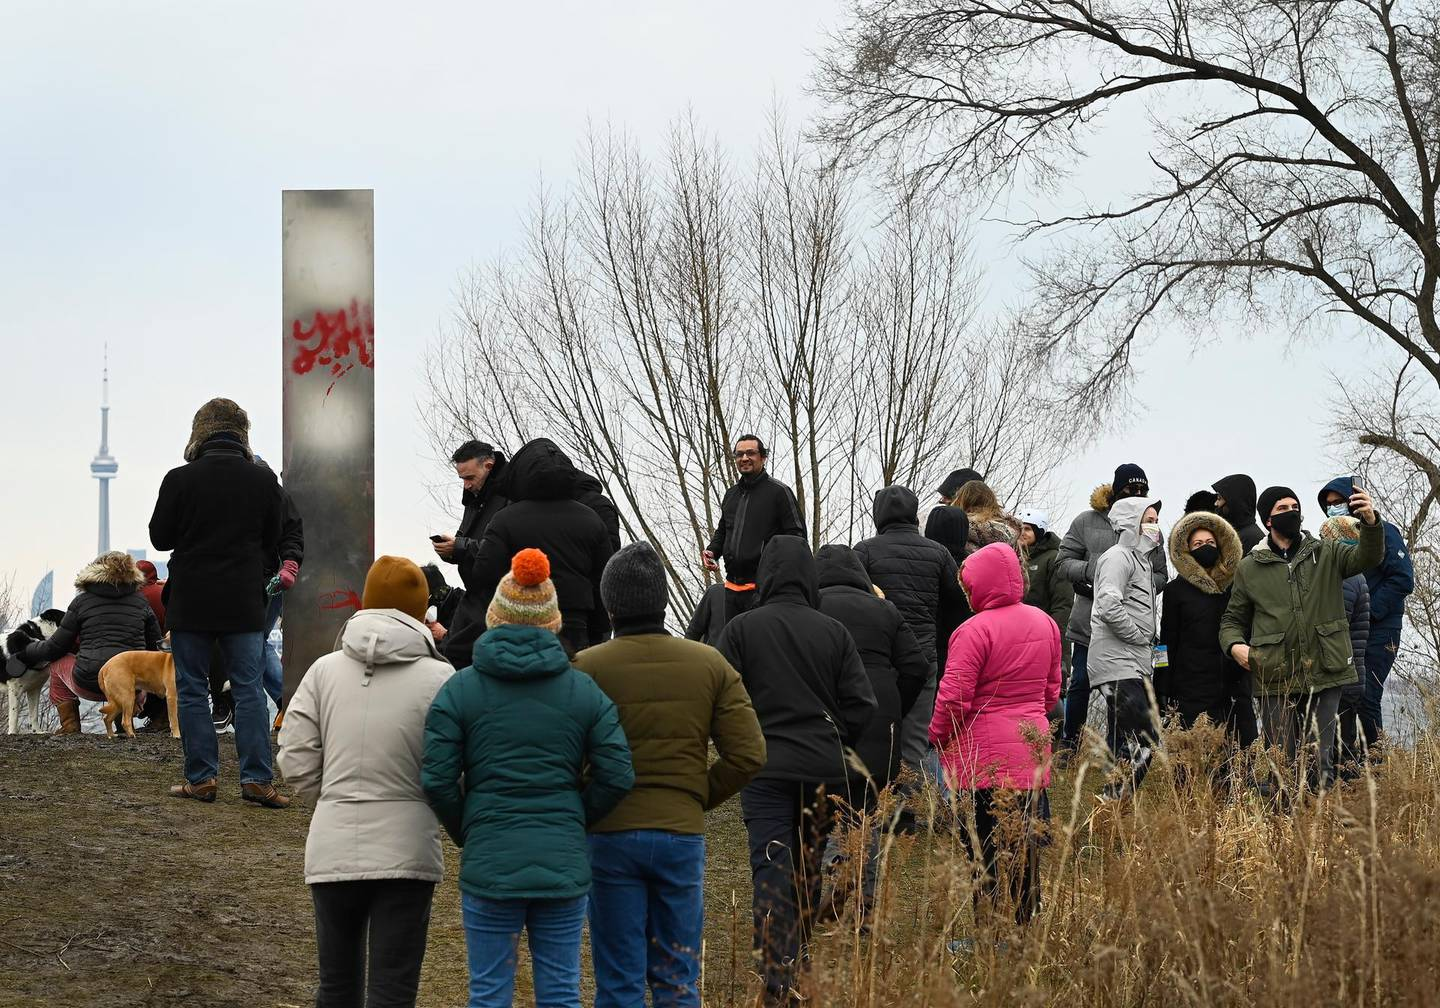 People look at a metallic monolith that appeared on the shorelines of Humber Bay Park during the COVID-19 pandemic in Toronto on Friday, Jan. 1, 2021. (Nathan Denette/The Canadian Press via AP)